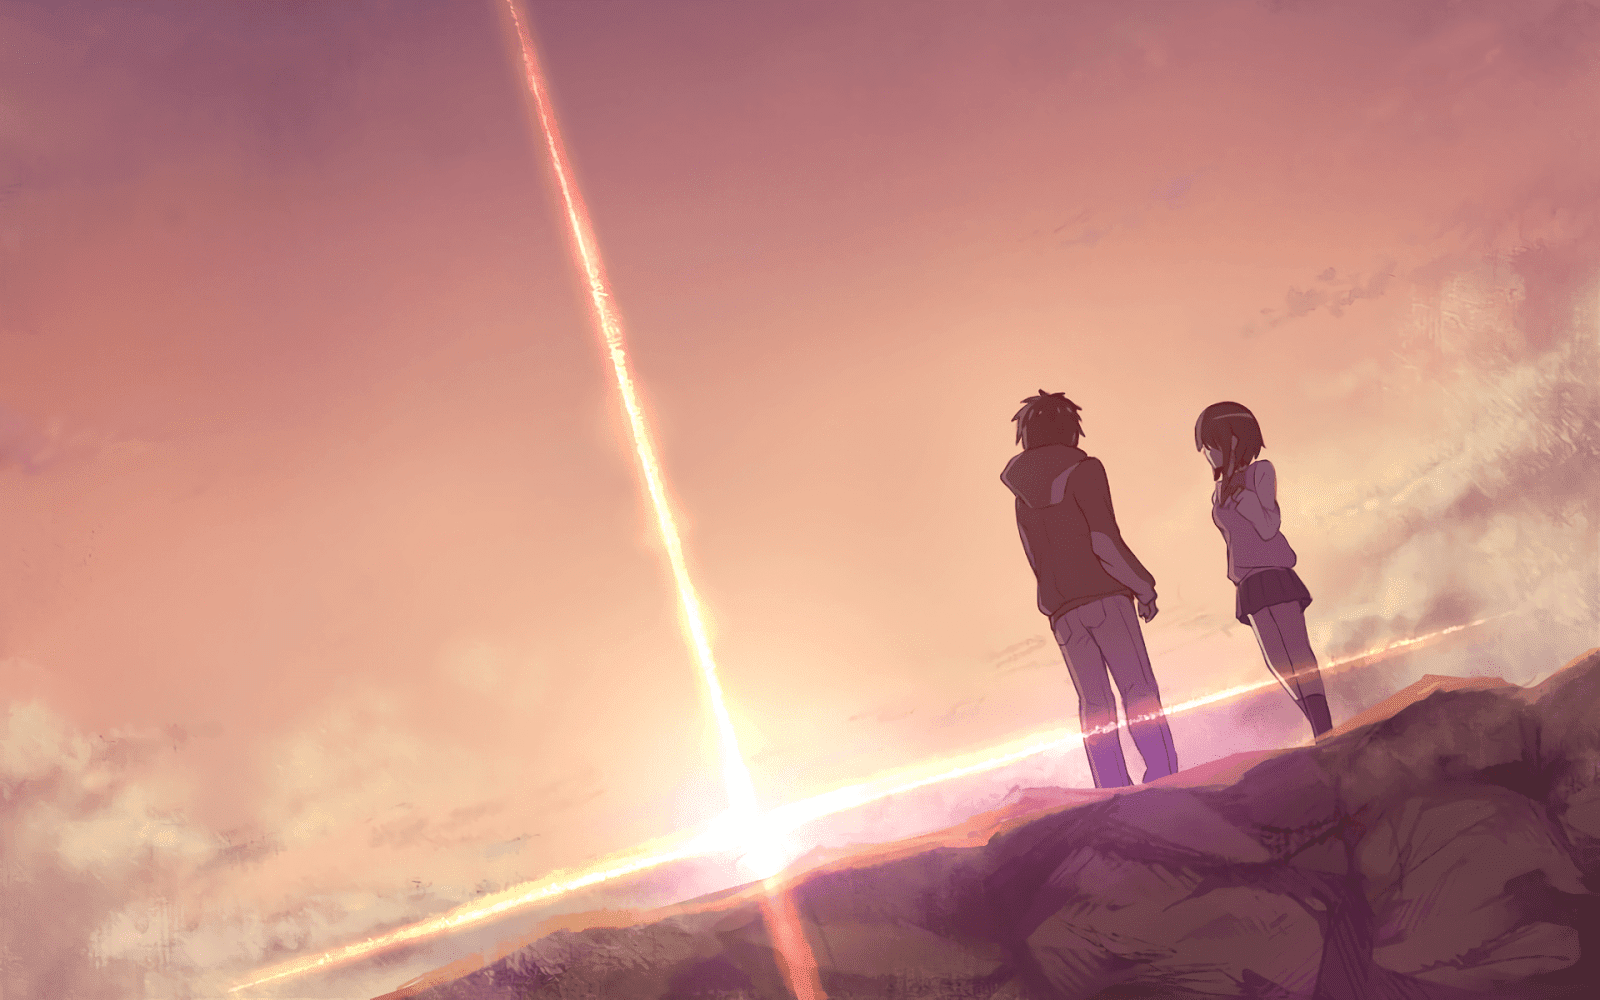 AowVN%2B%252851%2529 - [ Hình Nền ] Anime Your Name. - Kimi no Nawa full HD cực đẹp | Anime Wallpaper